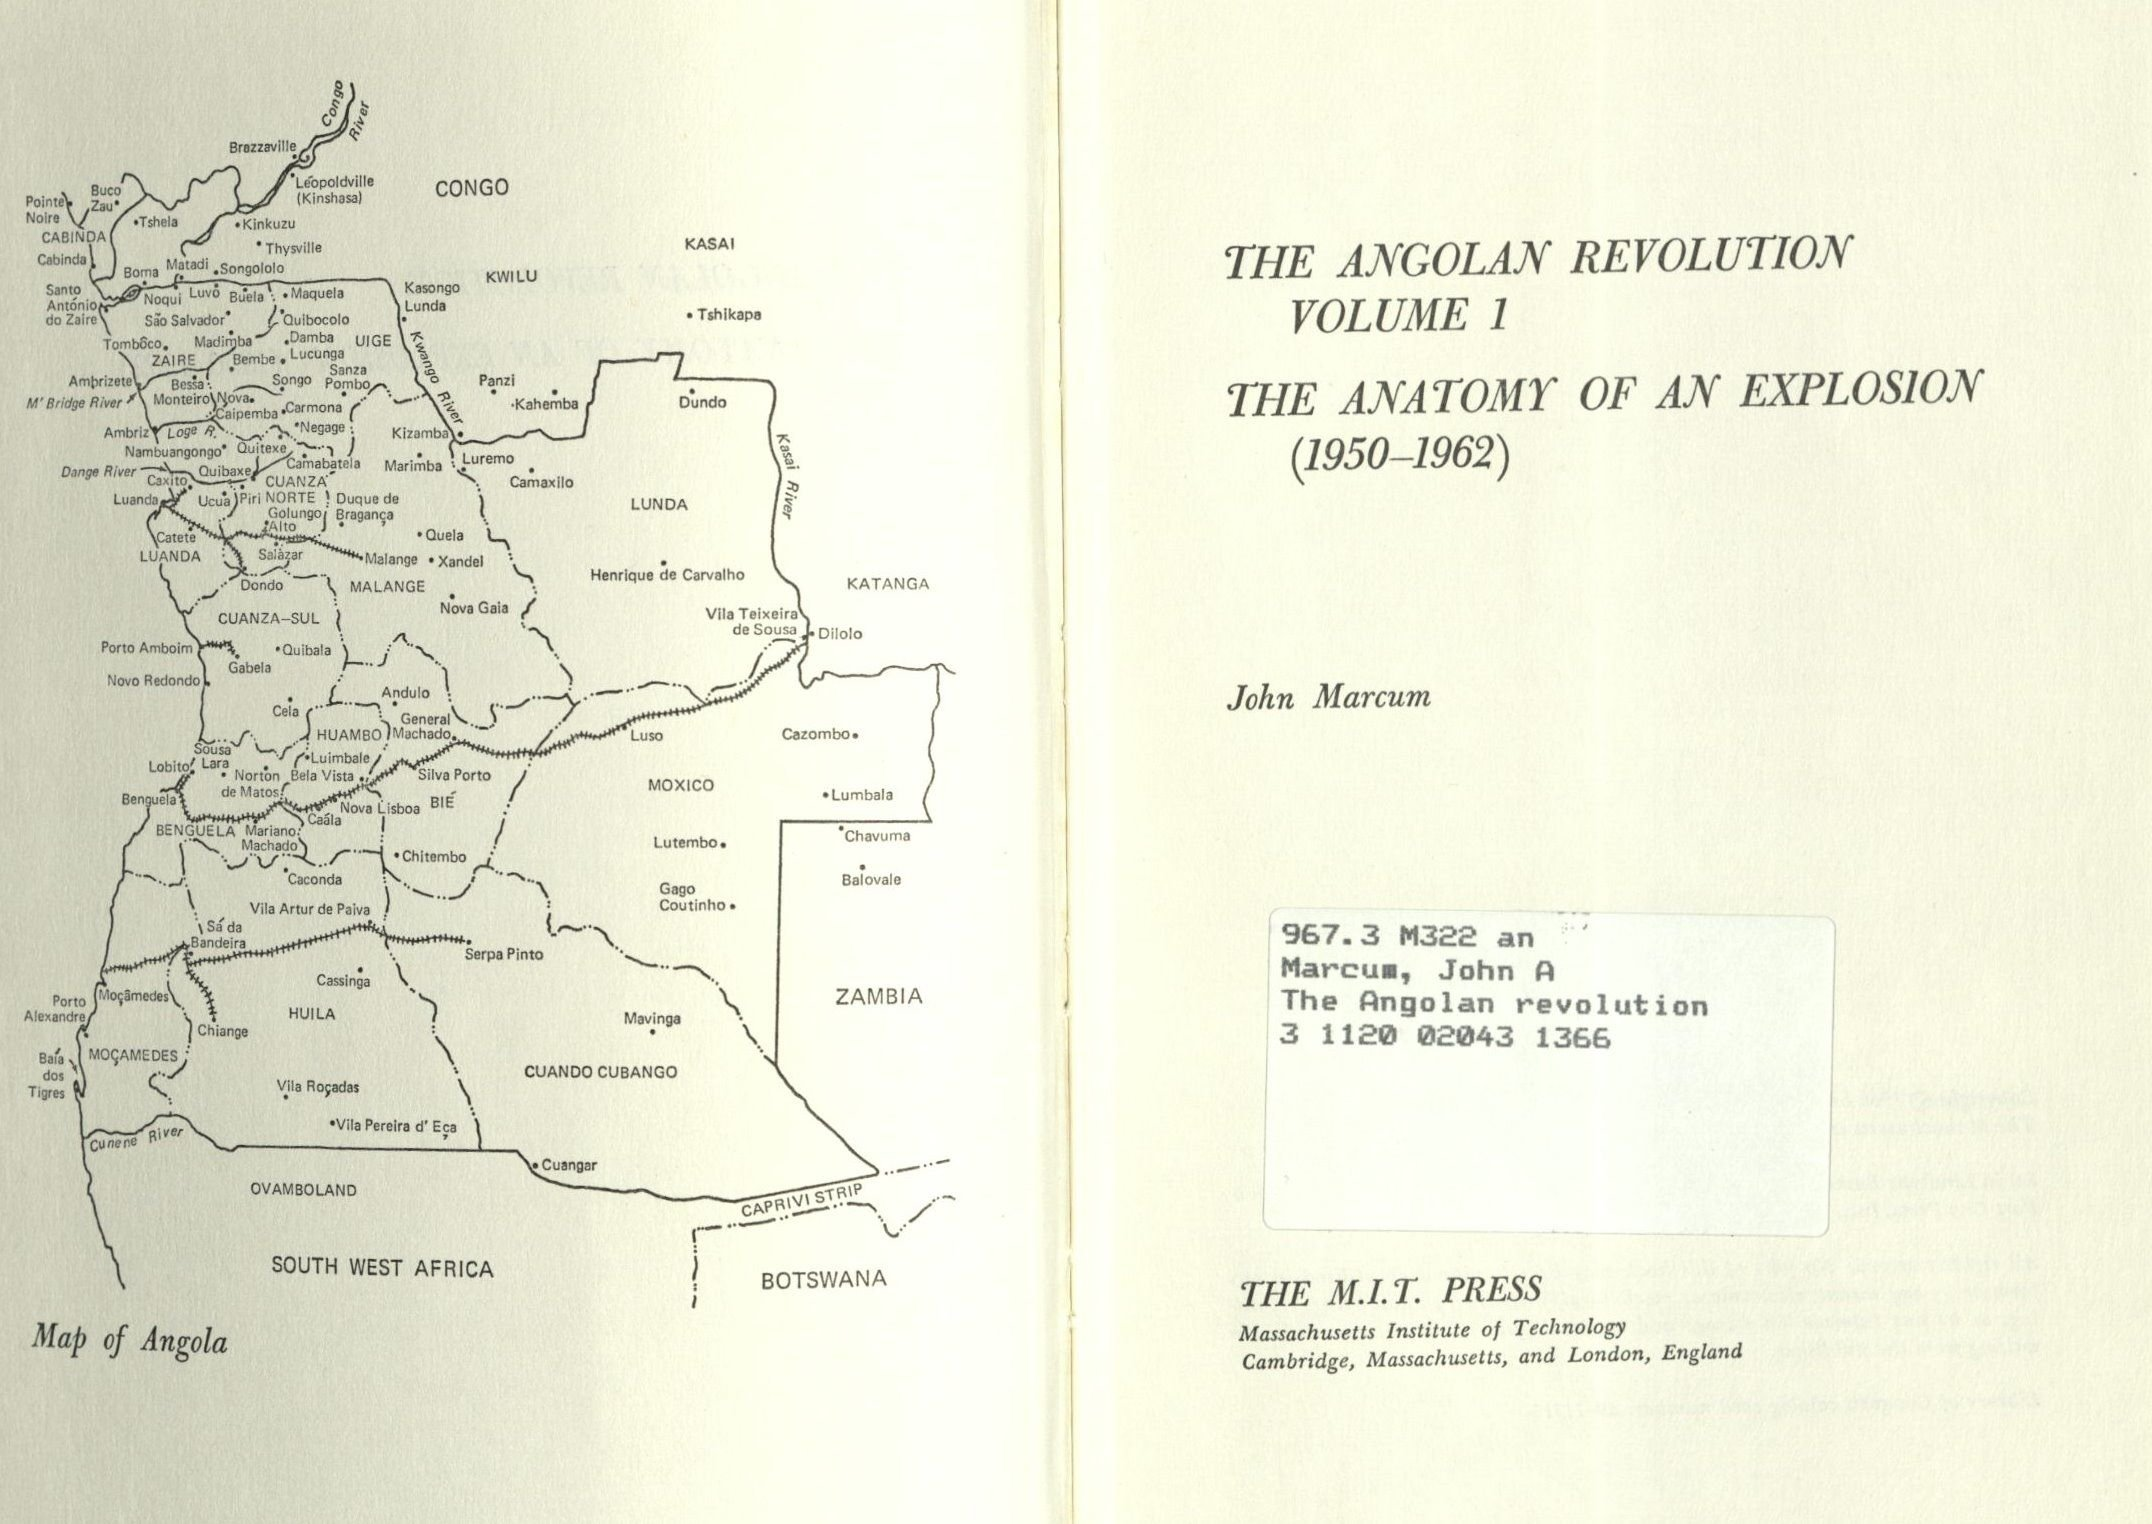 The Angolan Revolution Vol 1 The Anatomy Of An Explosion John A